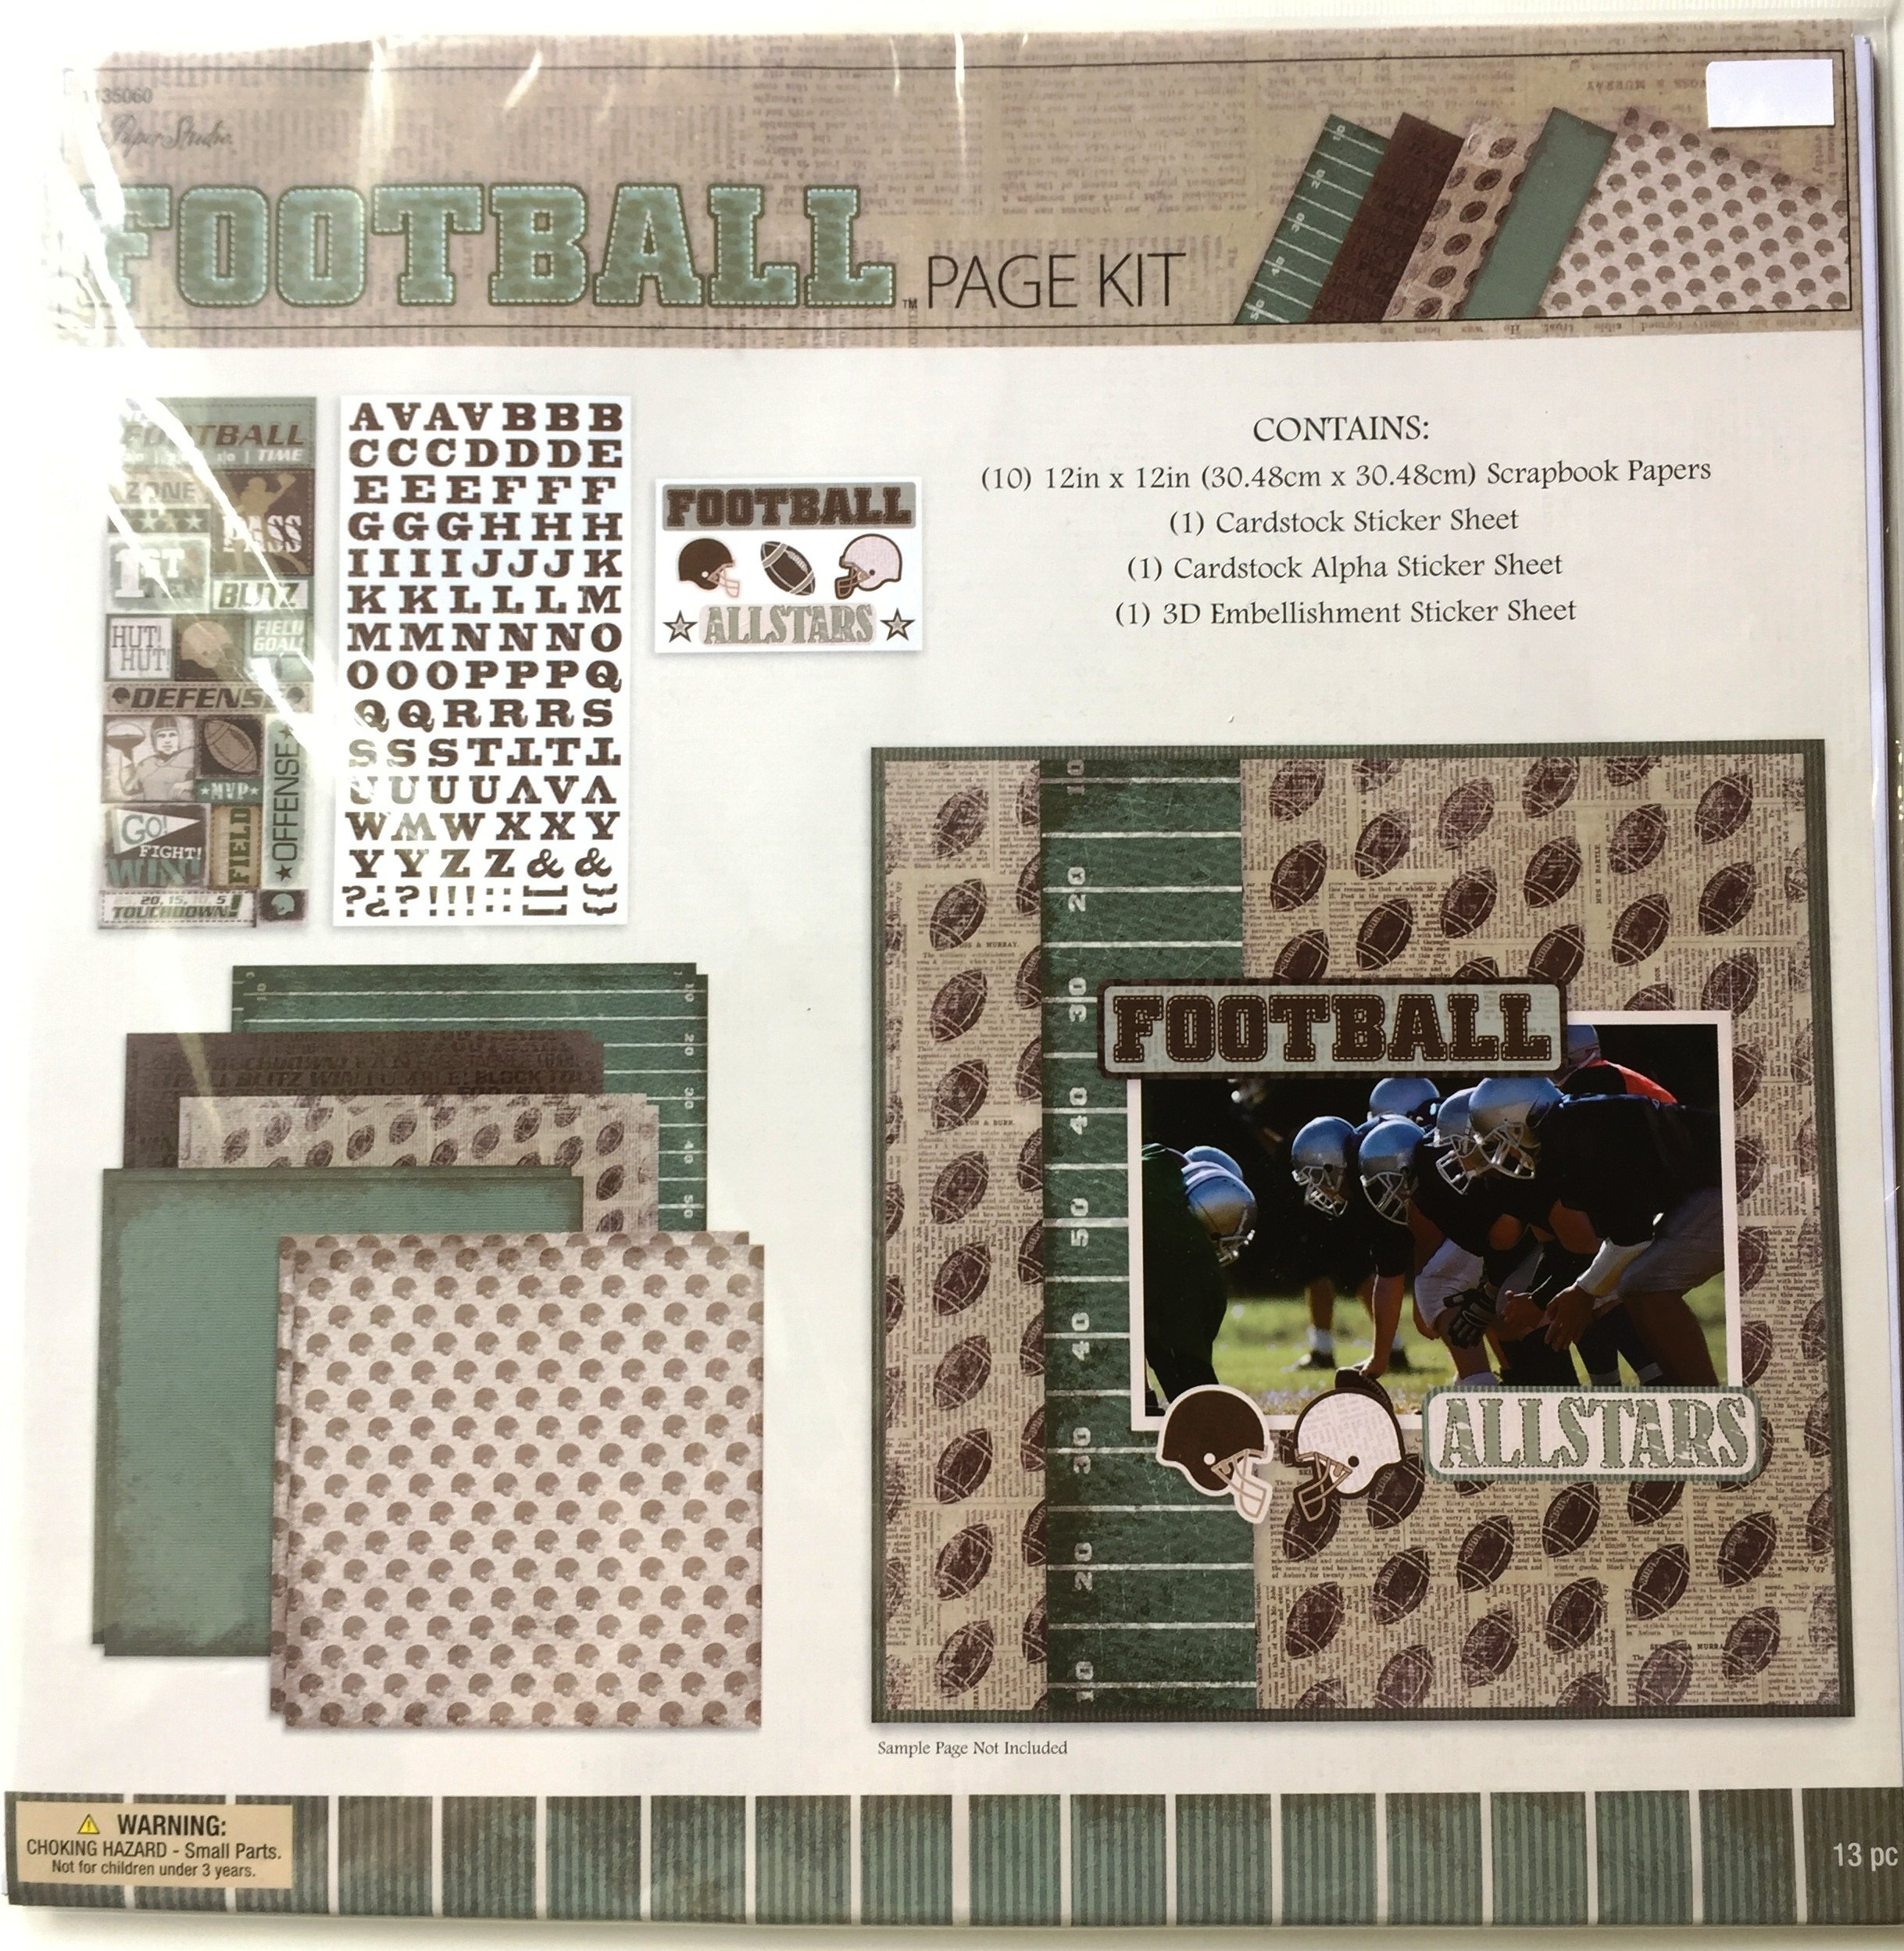 Football 12x12 inch Page Kit, 13 pcs, Paper, Stickers, Embellishments by The Paper Studio (Image #2)